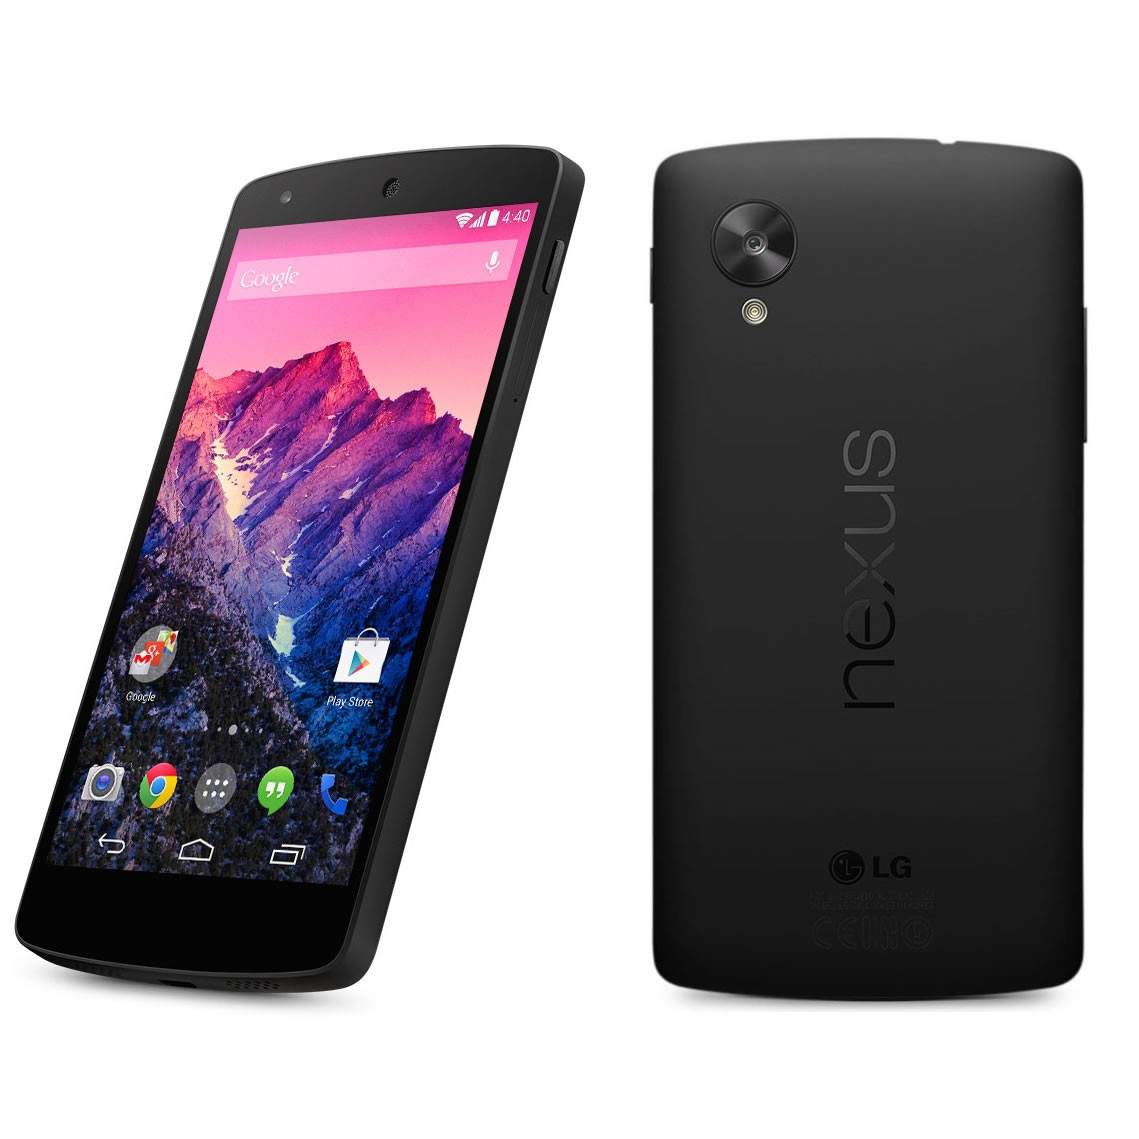 IT_Handy_Google-Nexus-5.jpg